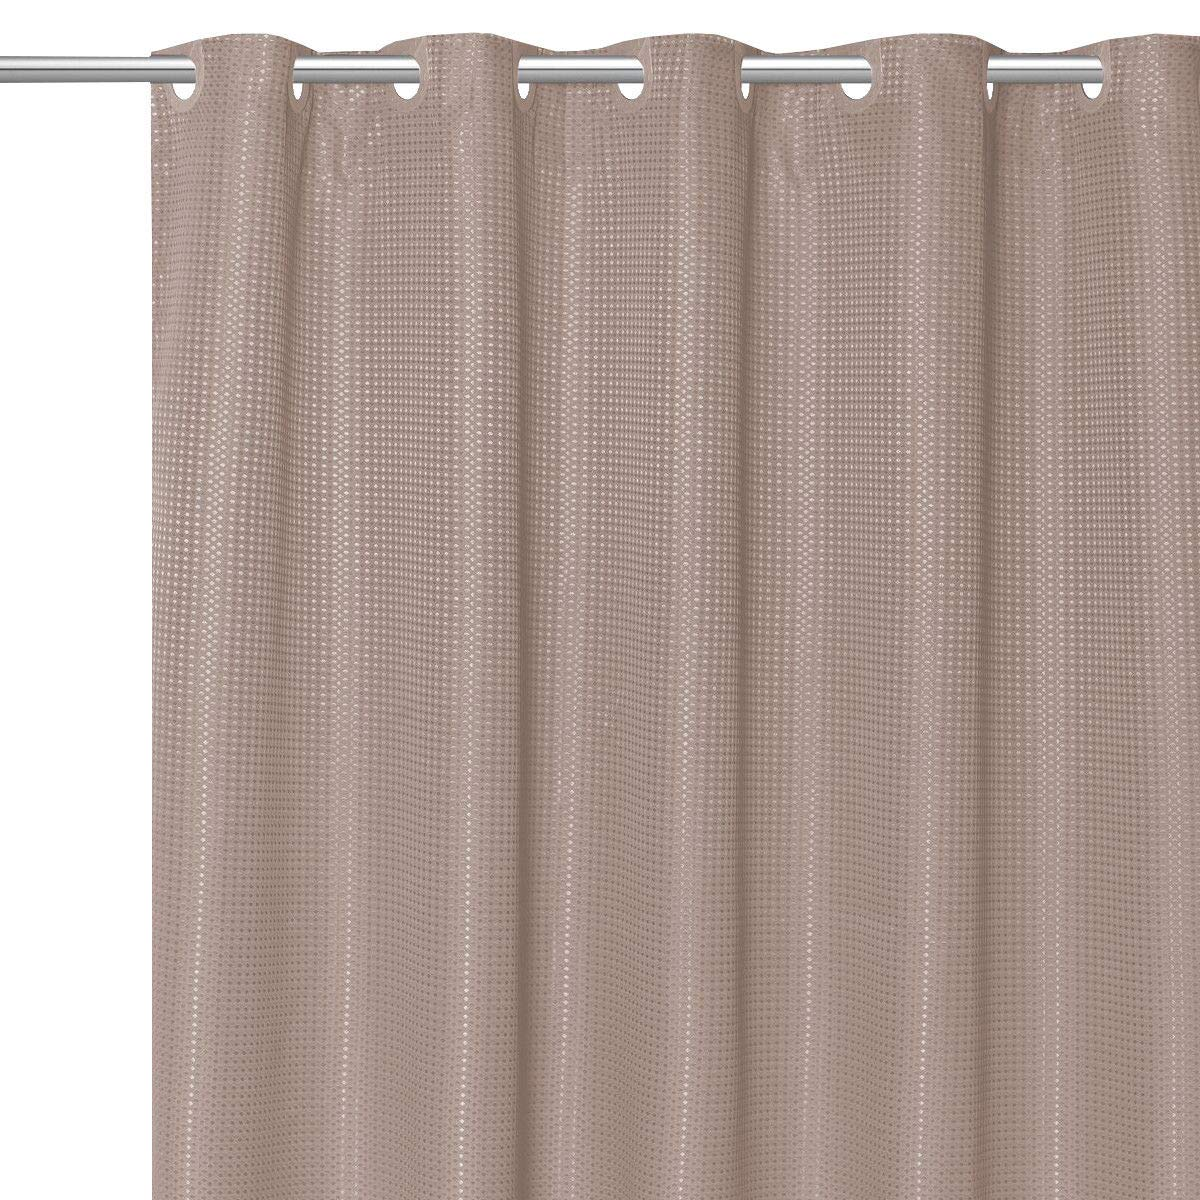 DN_LIN Stylish EZ ON Waffle Weave Fabric Shower Curtain with Snap Off Liner 70''x75''- Taupe.